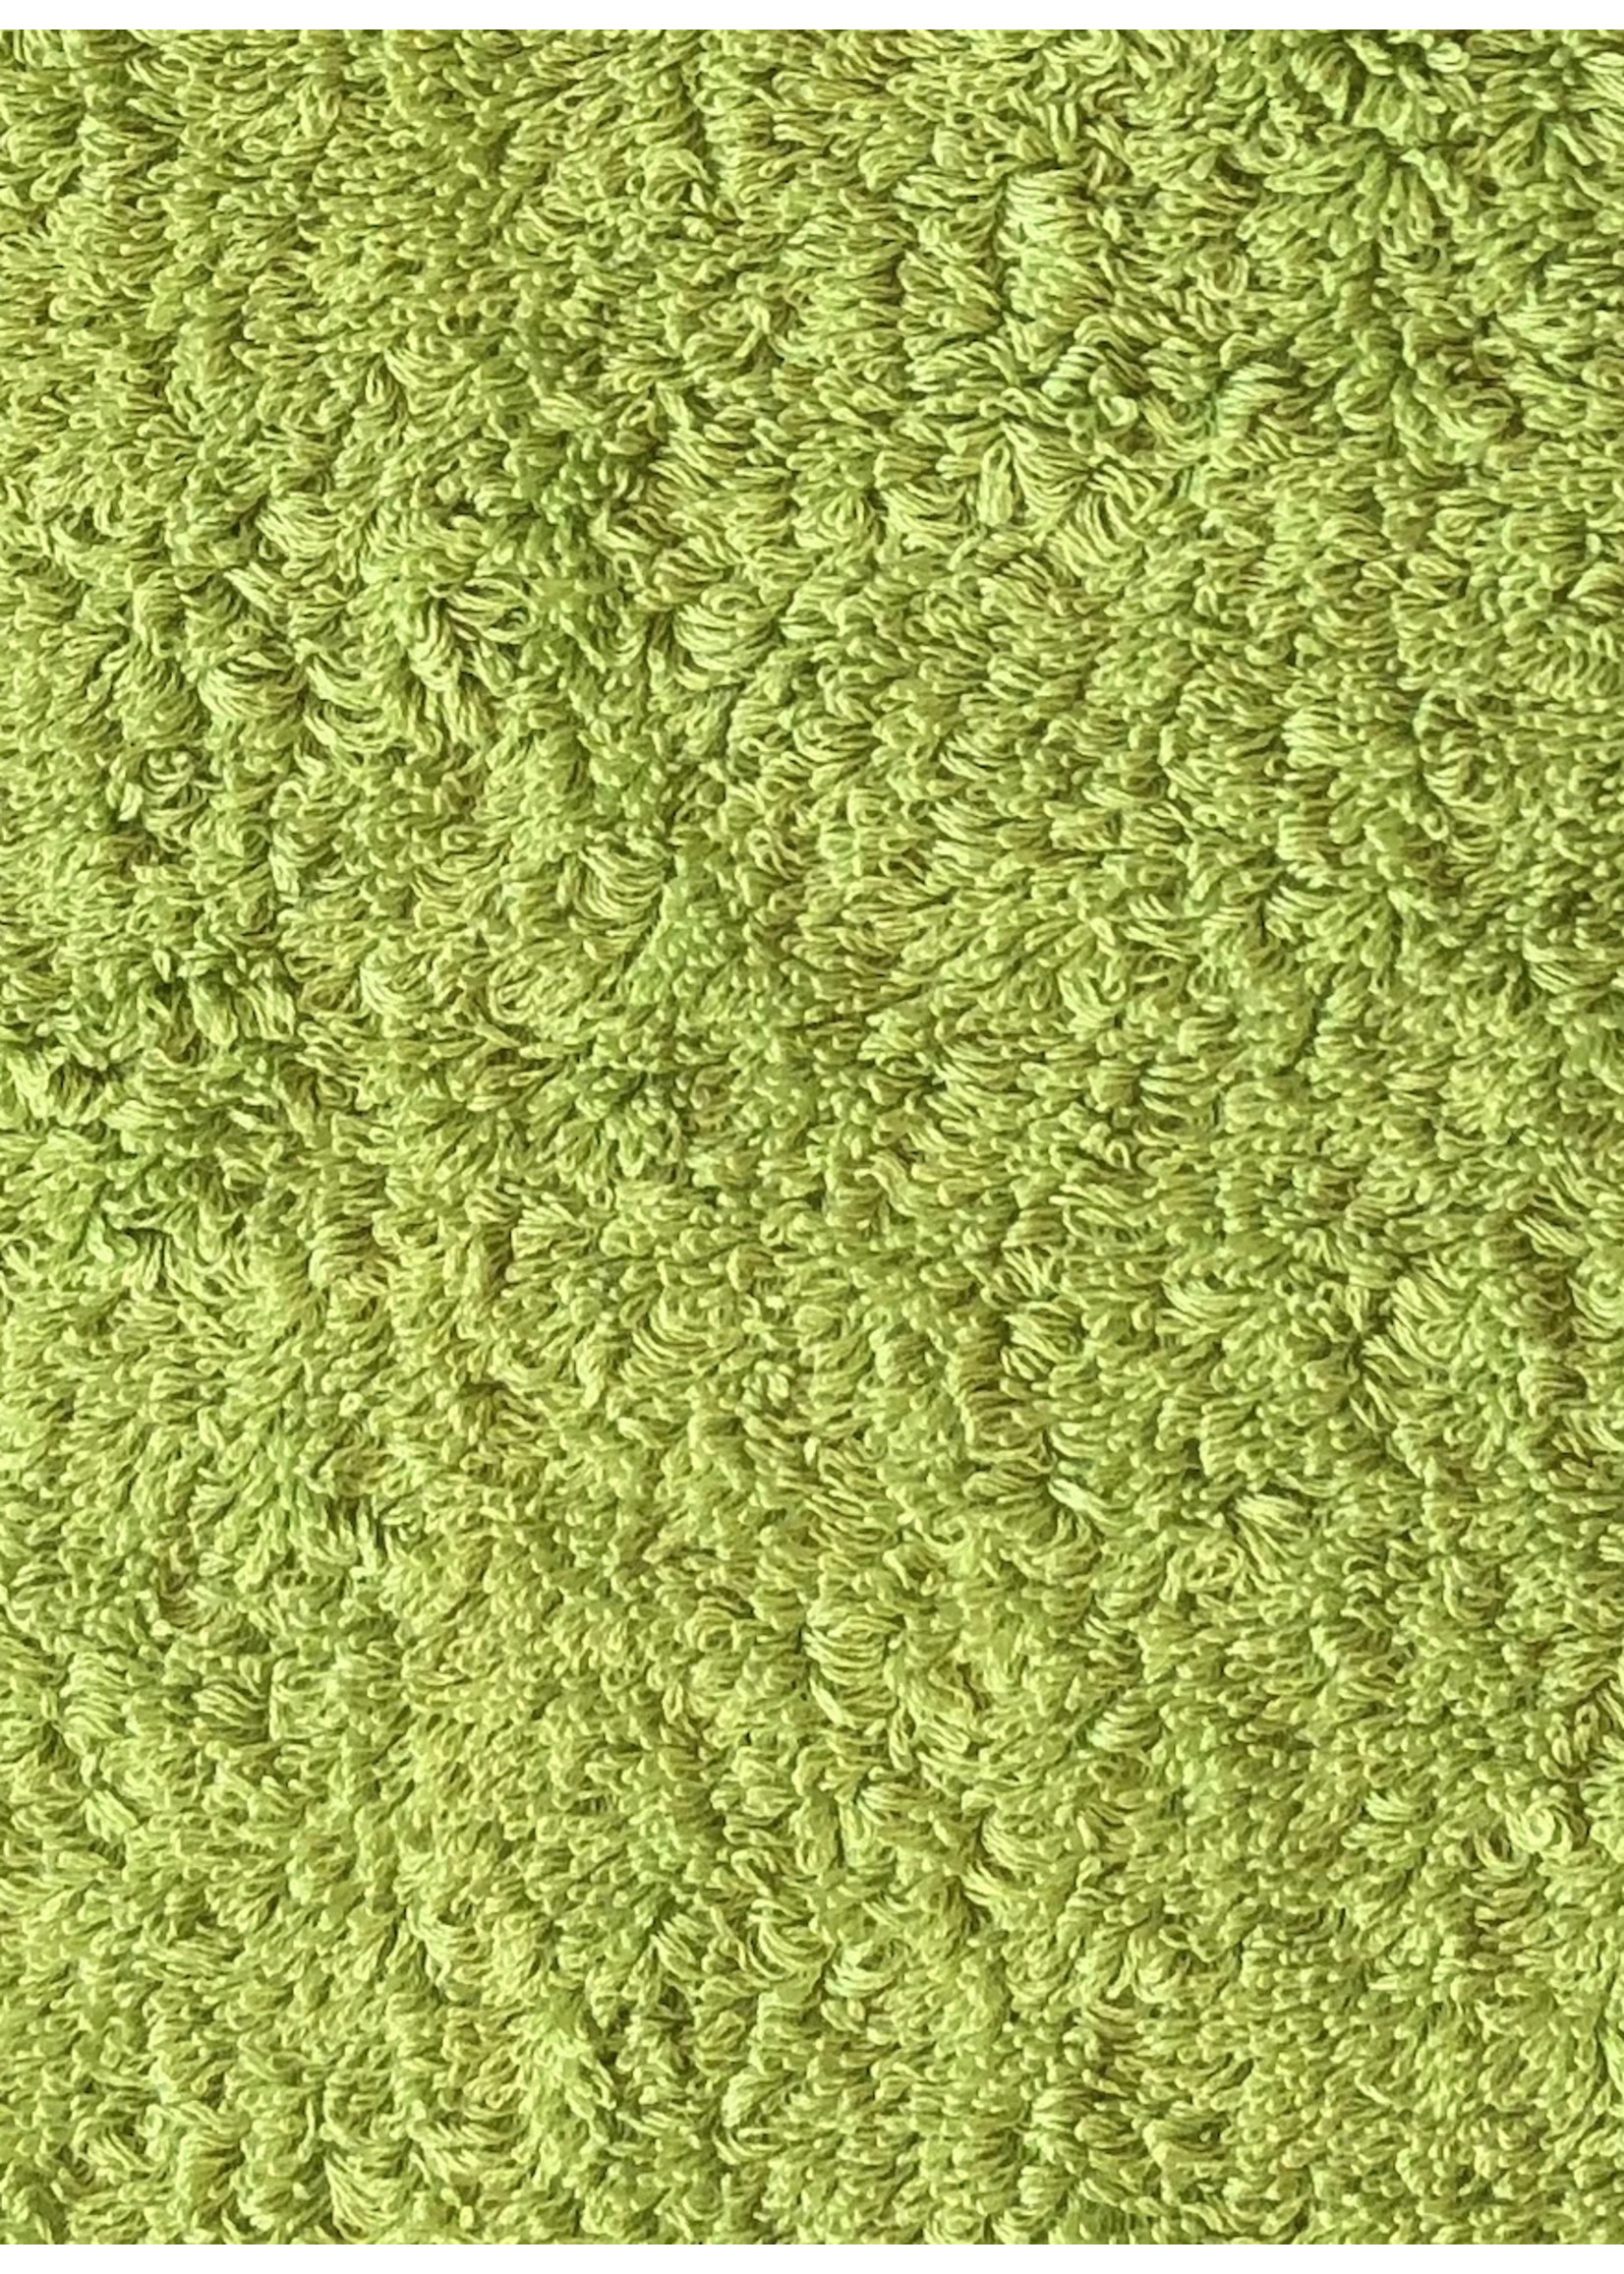 Abyss & Habidecor Super Pile Apple Green Towels